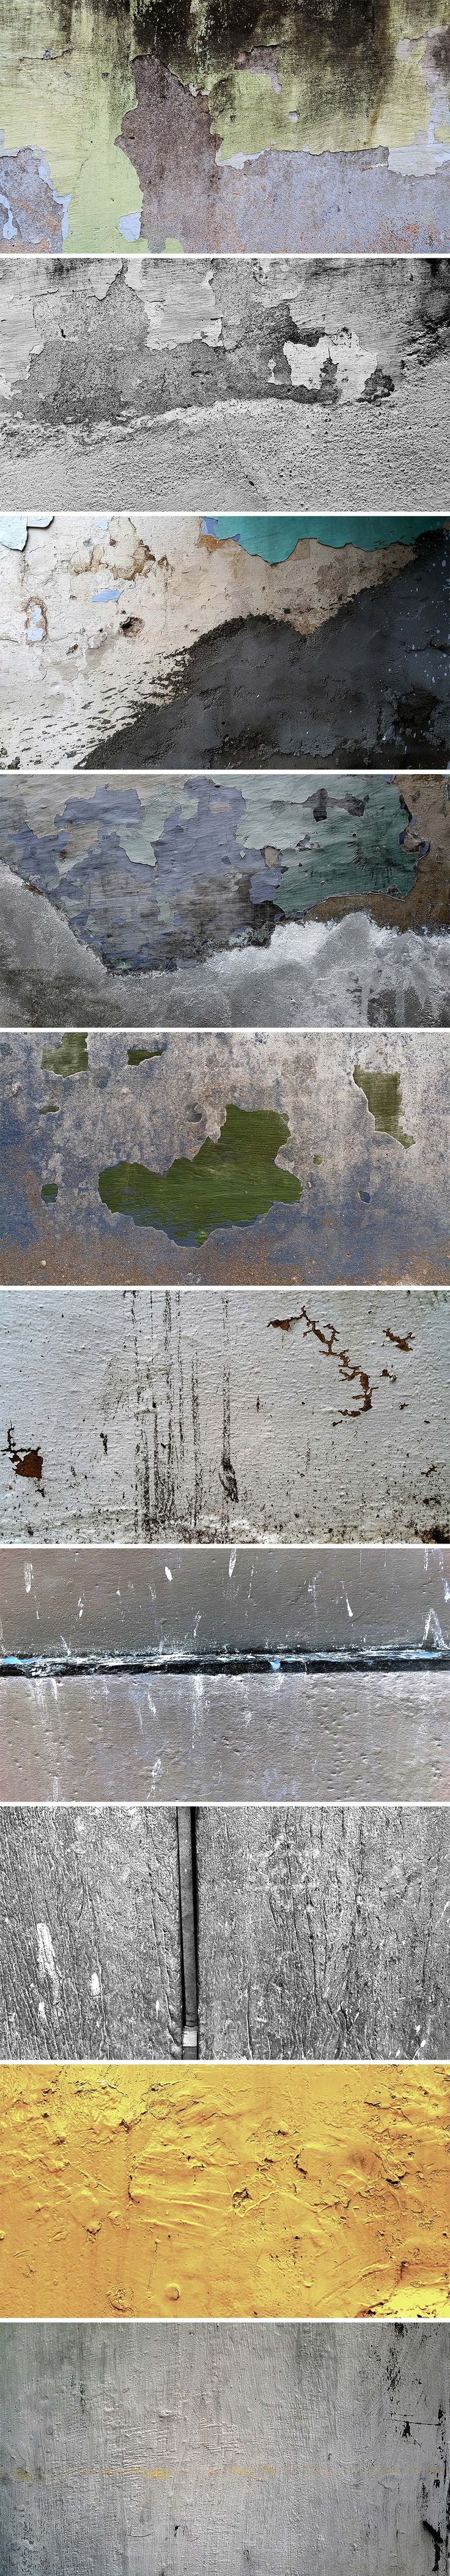 TweetSumoMeFriends, today's freebie is a set of 10 grunge wall textures. These texture images authentically look old, paint peeling and dirty because they are captured from a couple of real melancholic-looking houses and other areas.